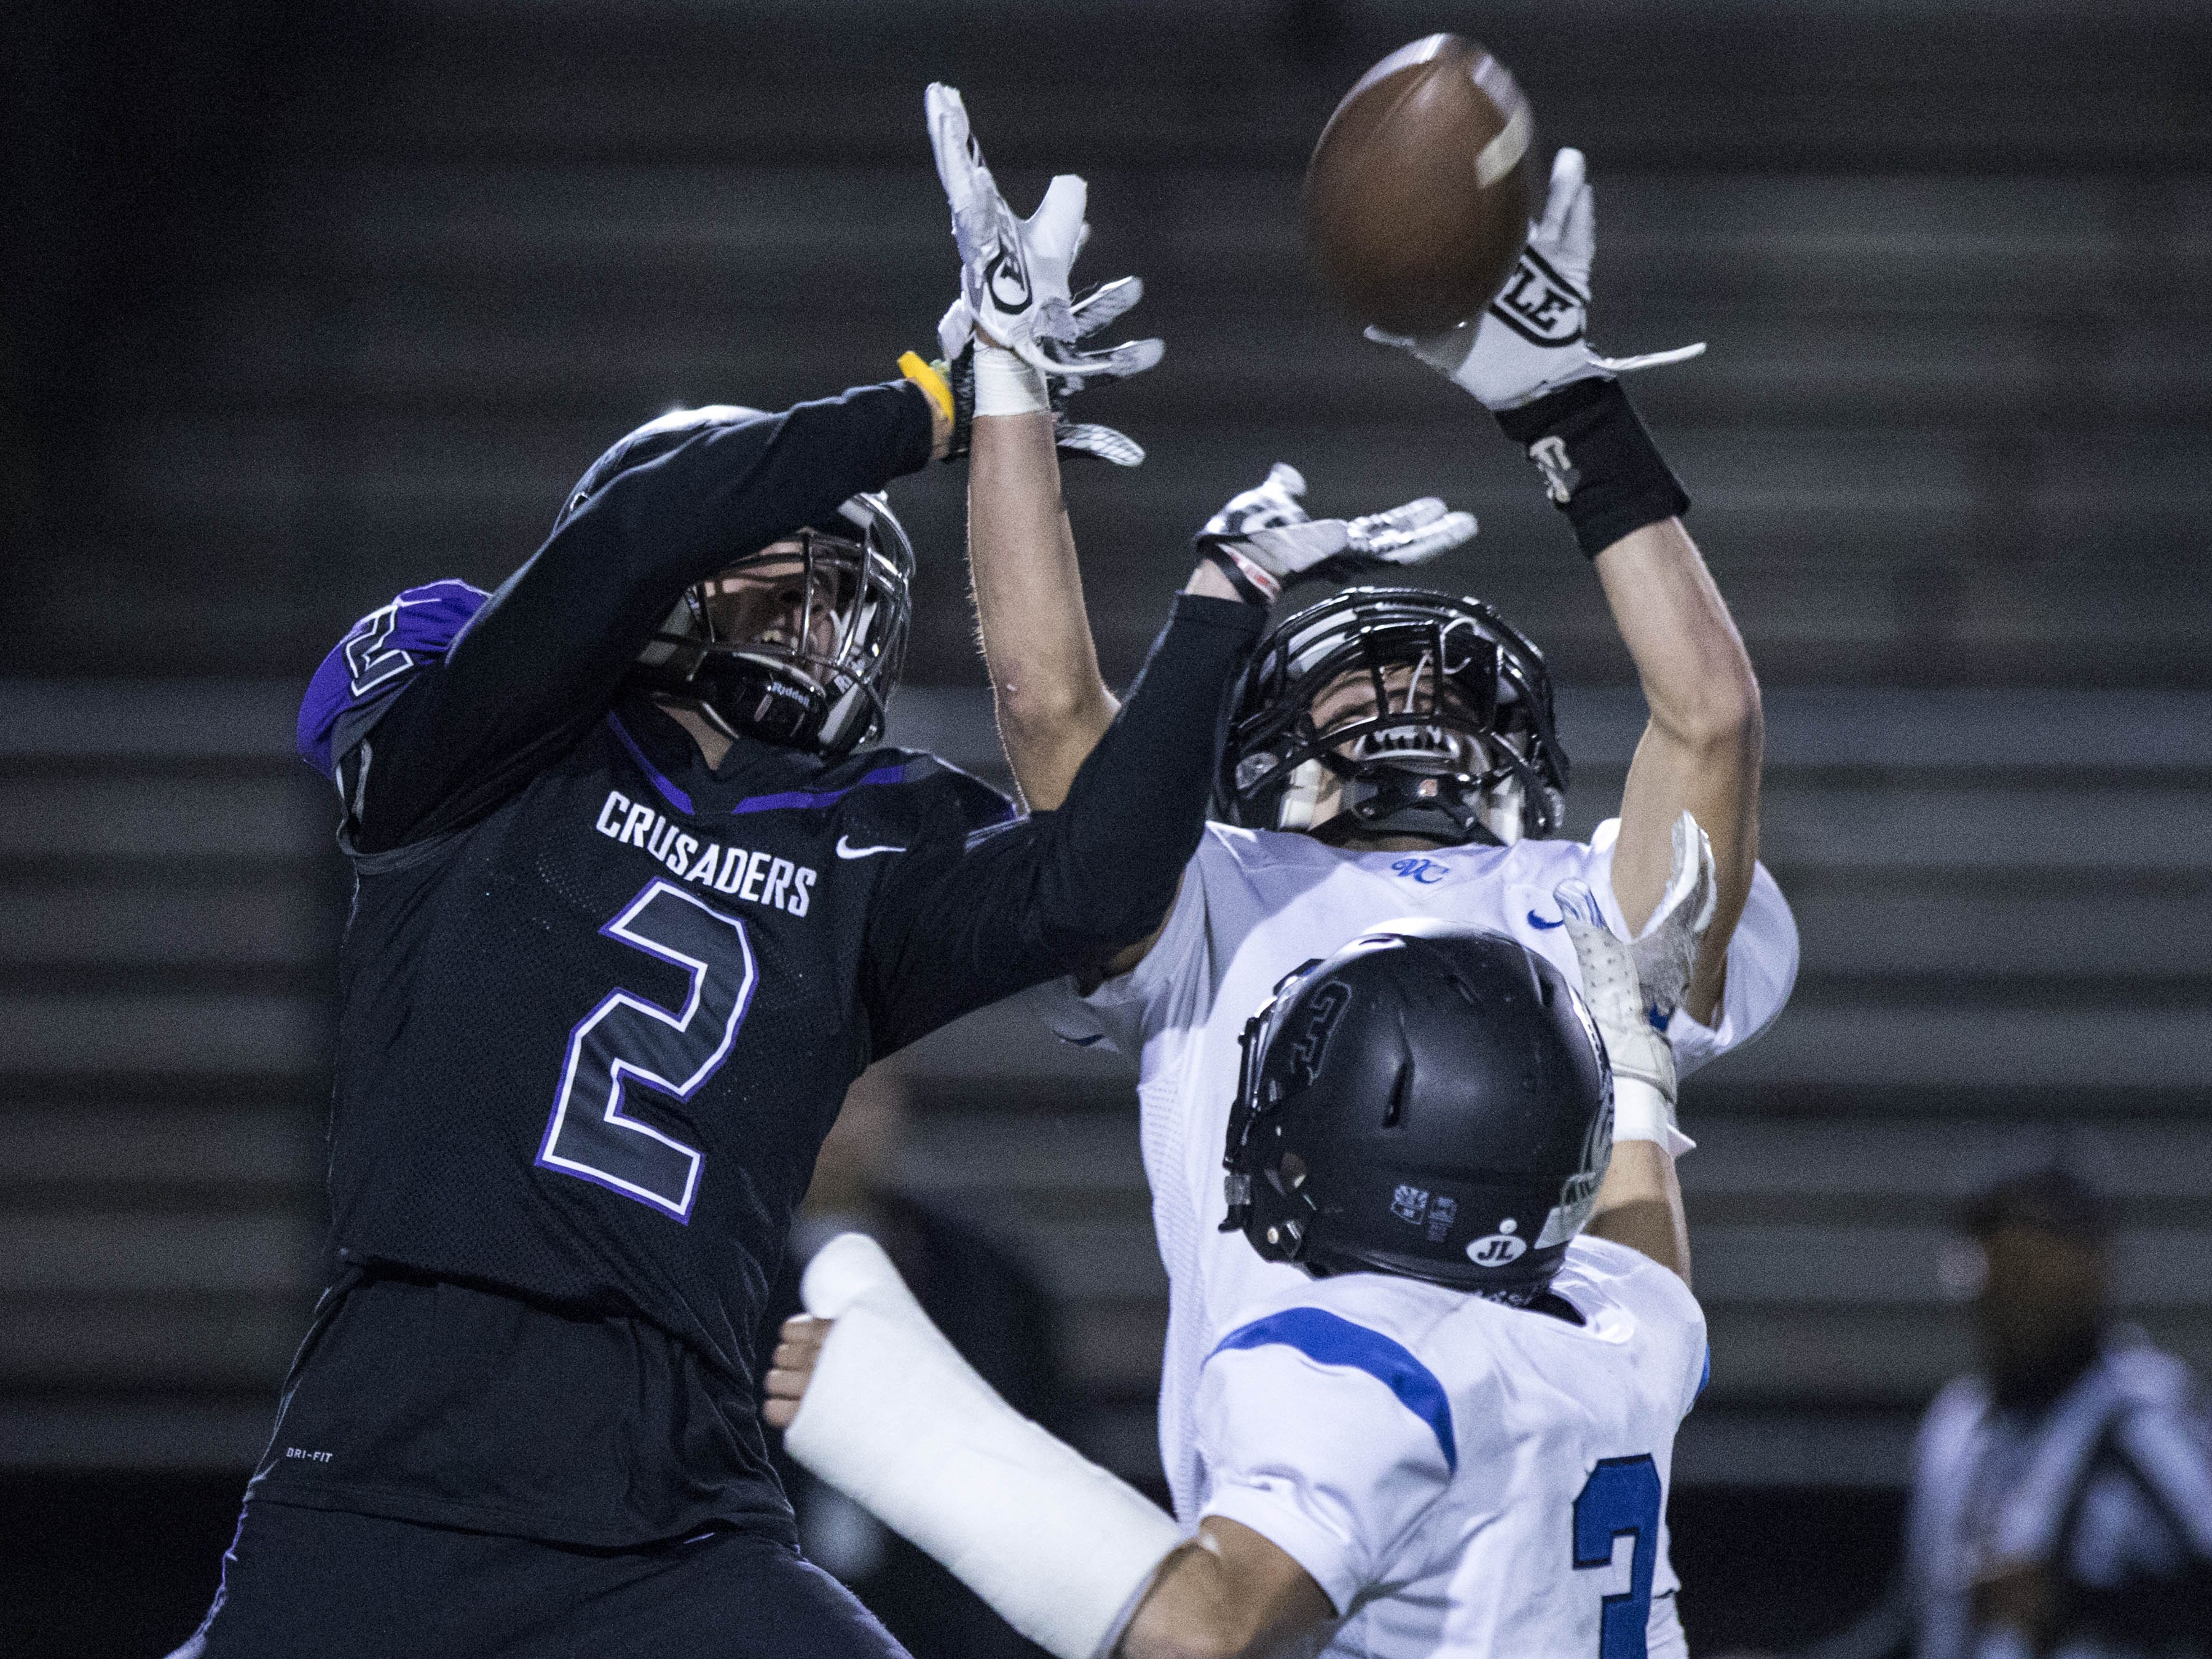 Northwest Christian's Adam Bunch (2) and Valley Christian's Tanner Canfield (21) battle for the ball during their game  at North Canyon High School in Phoenix  Friday, Nov.17, 2018. #azhsfb